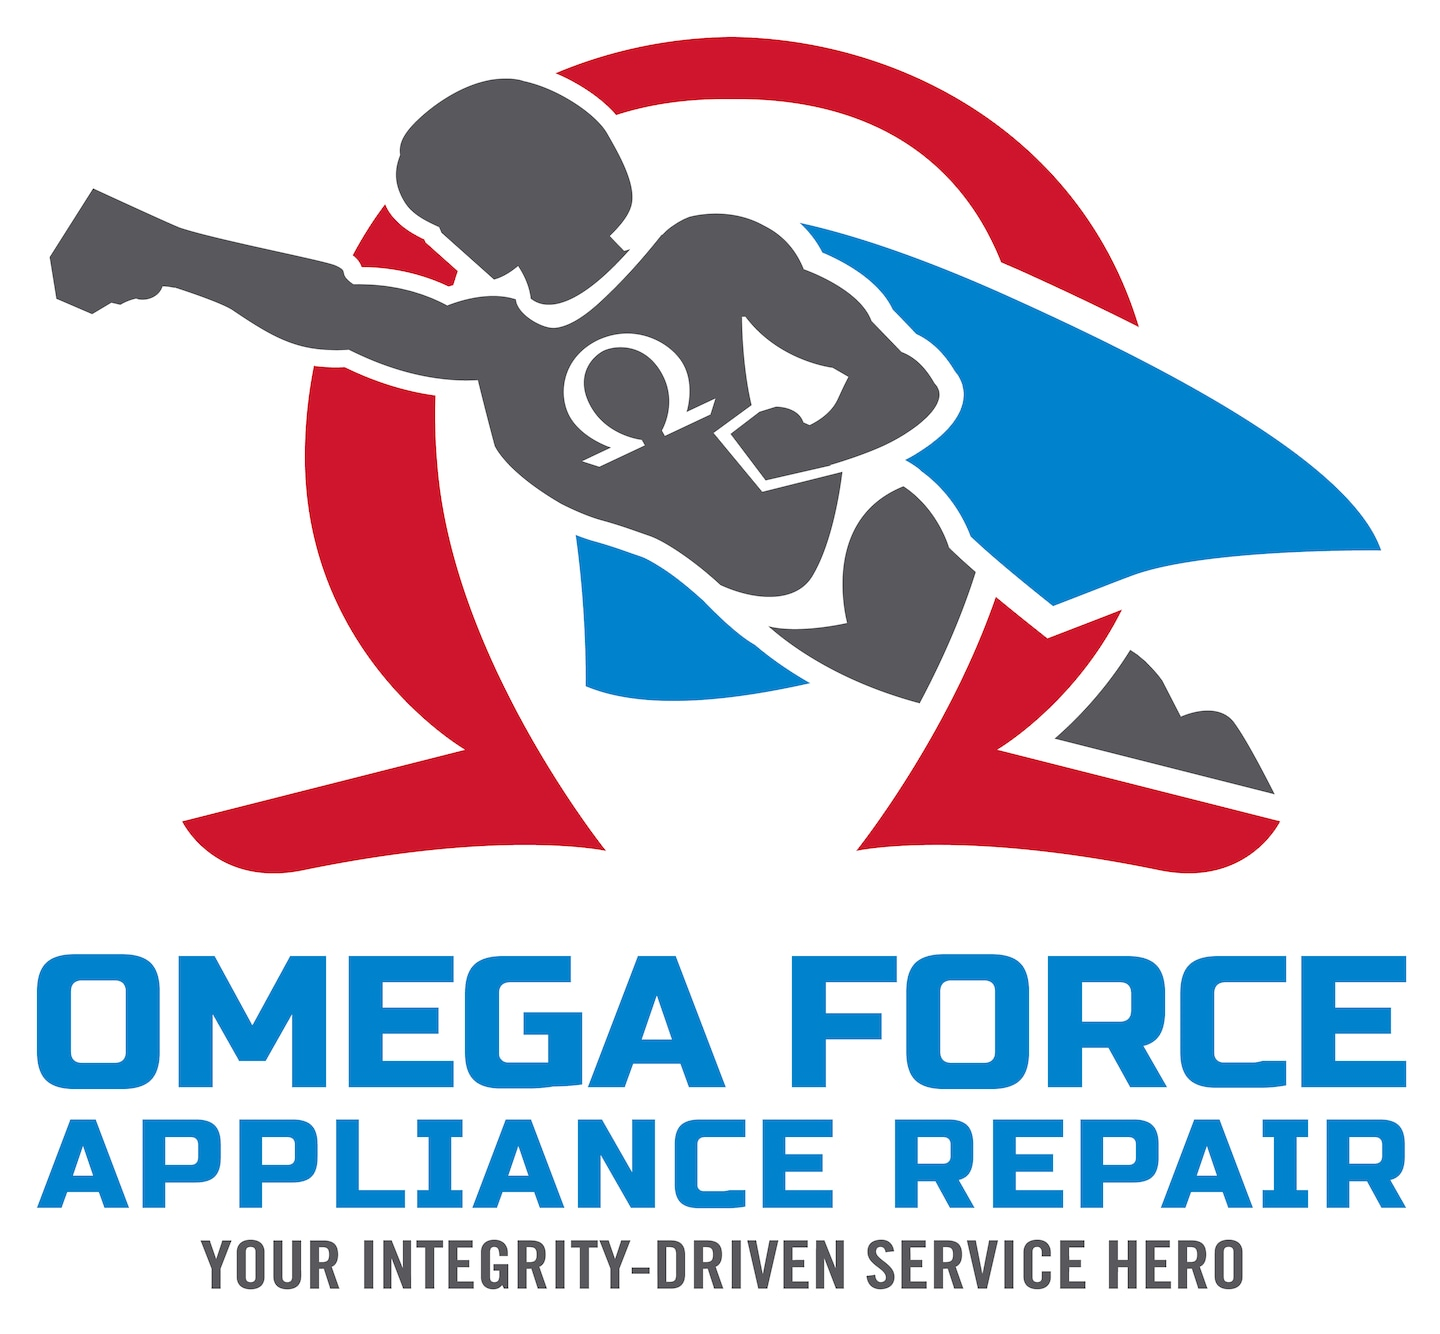 Omega Force Appliance Repair